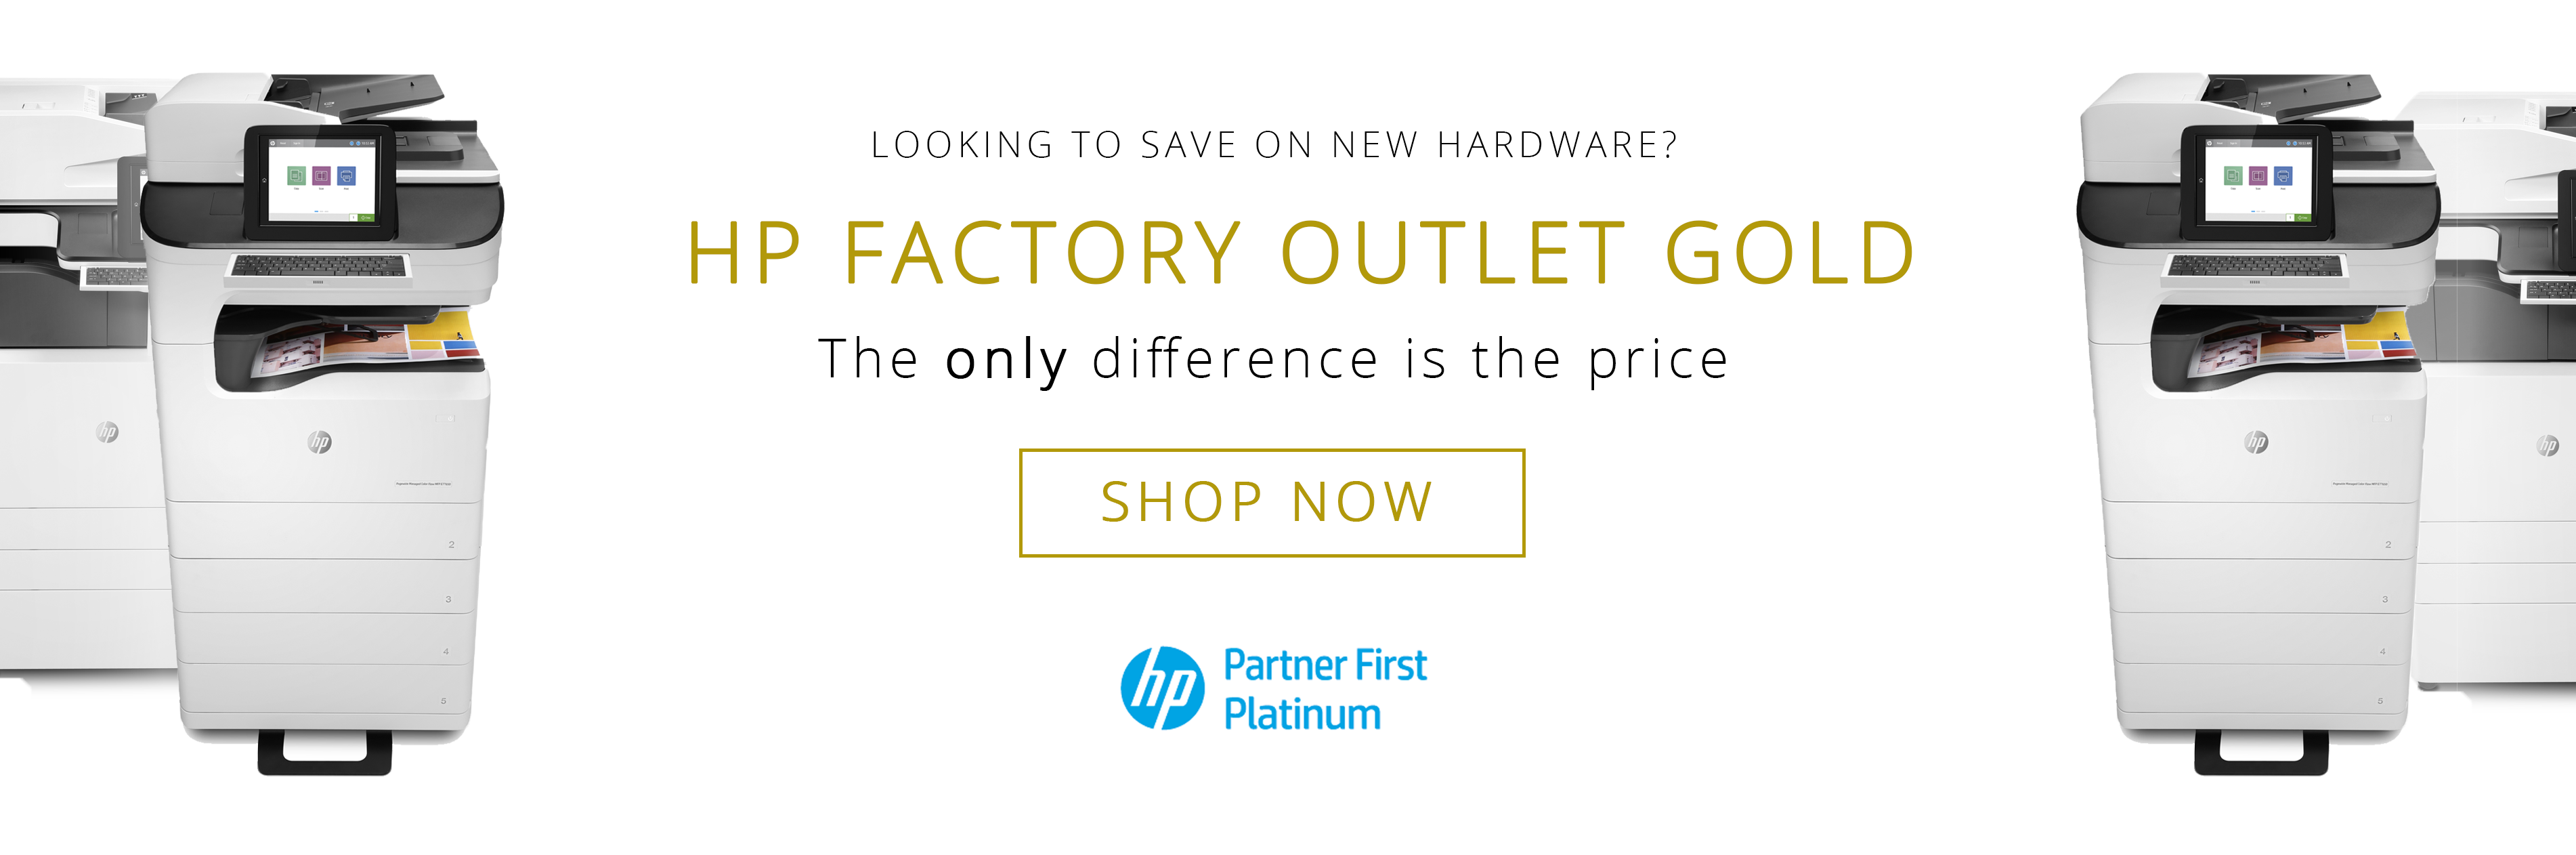 Factory Outlet - with partner logo